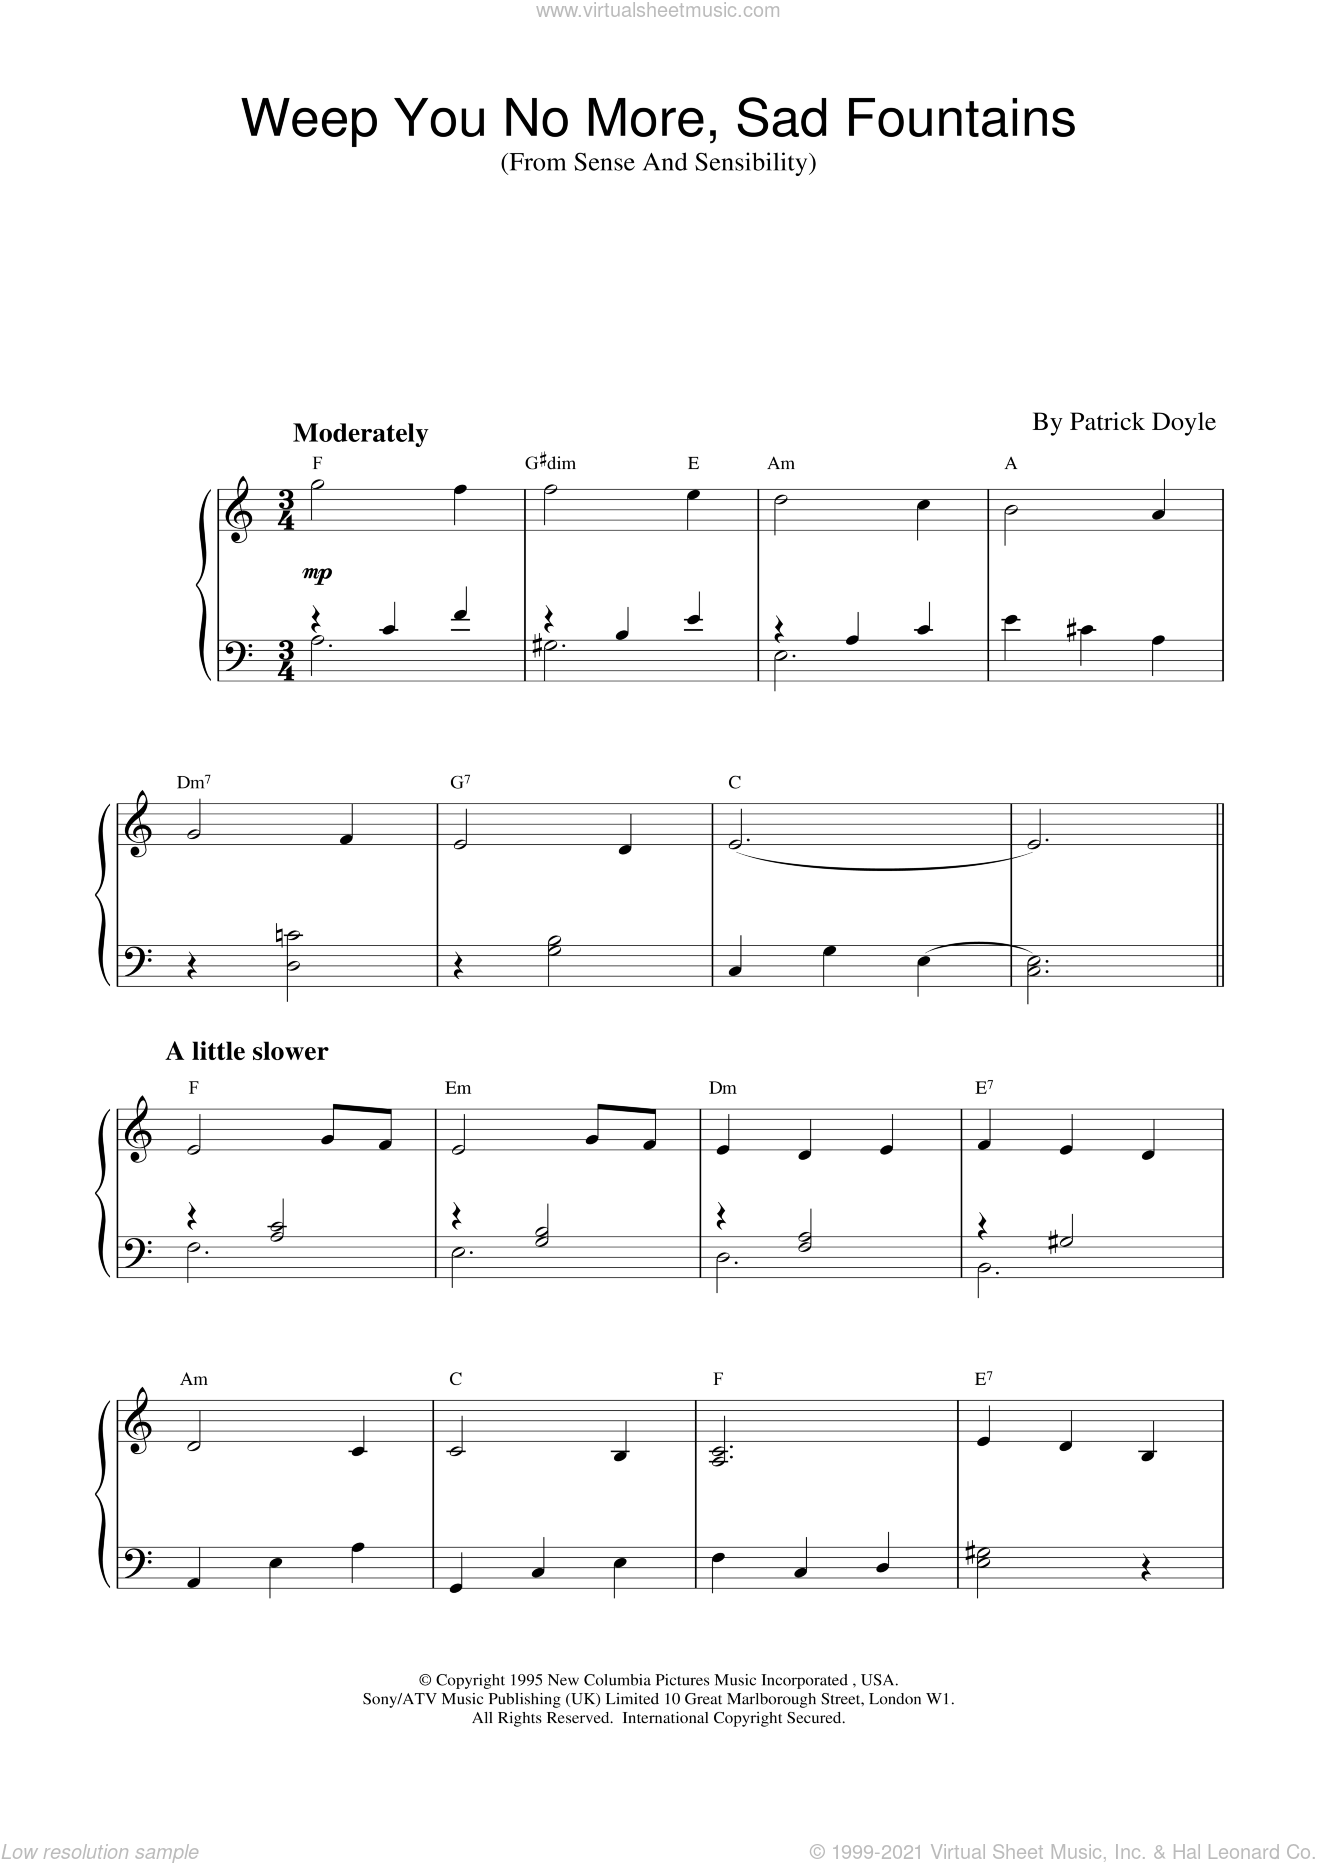 Weep You No More, Sad Fountains sheet music for piano solo by Patrick Doyle